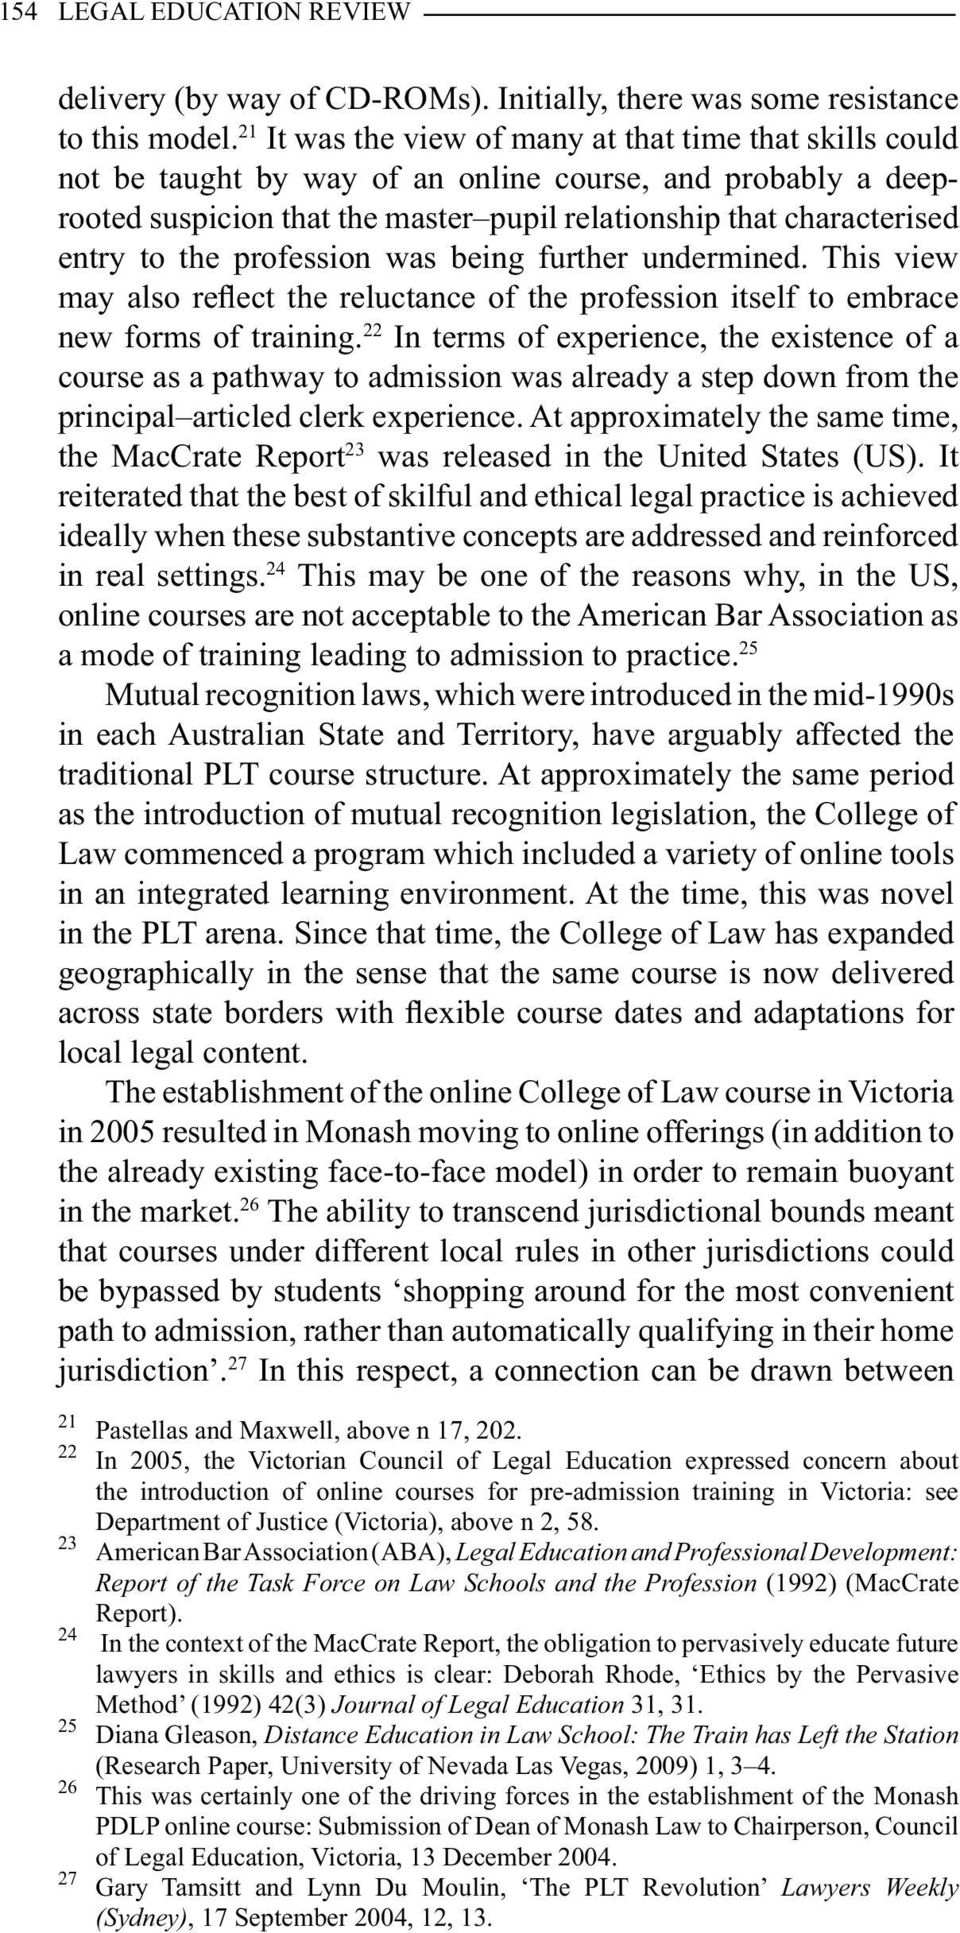 the profession was being further undermined. This view may also reflect the reluctance of the profession itself to embrace new forms of training.